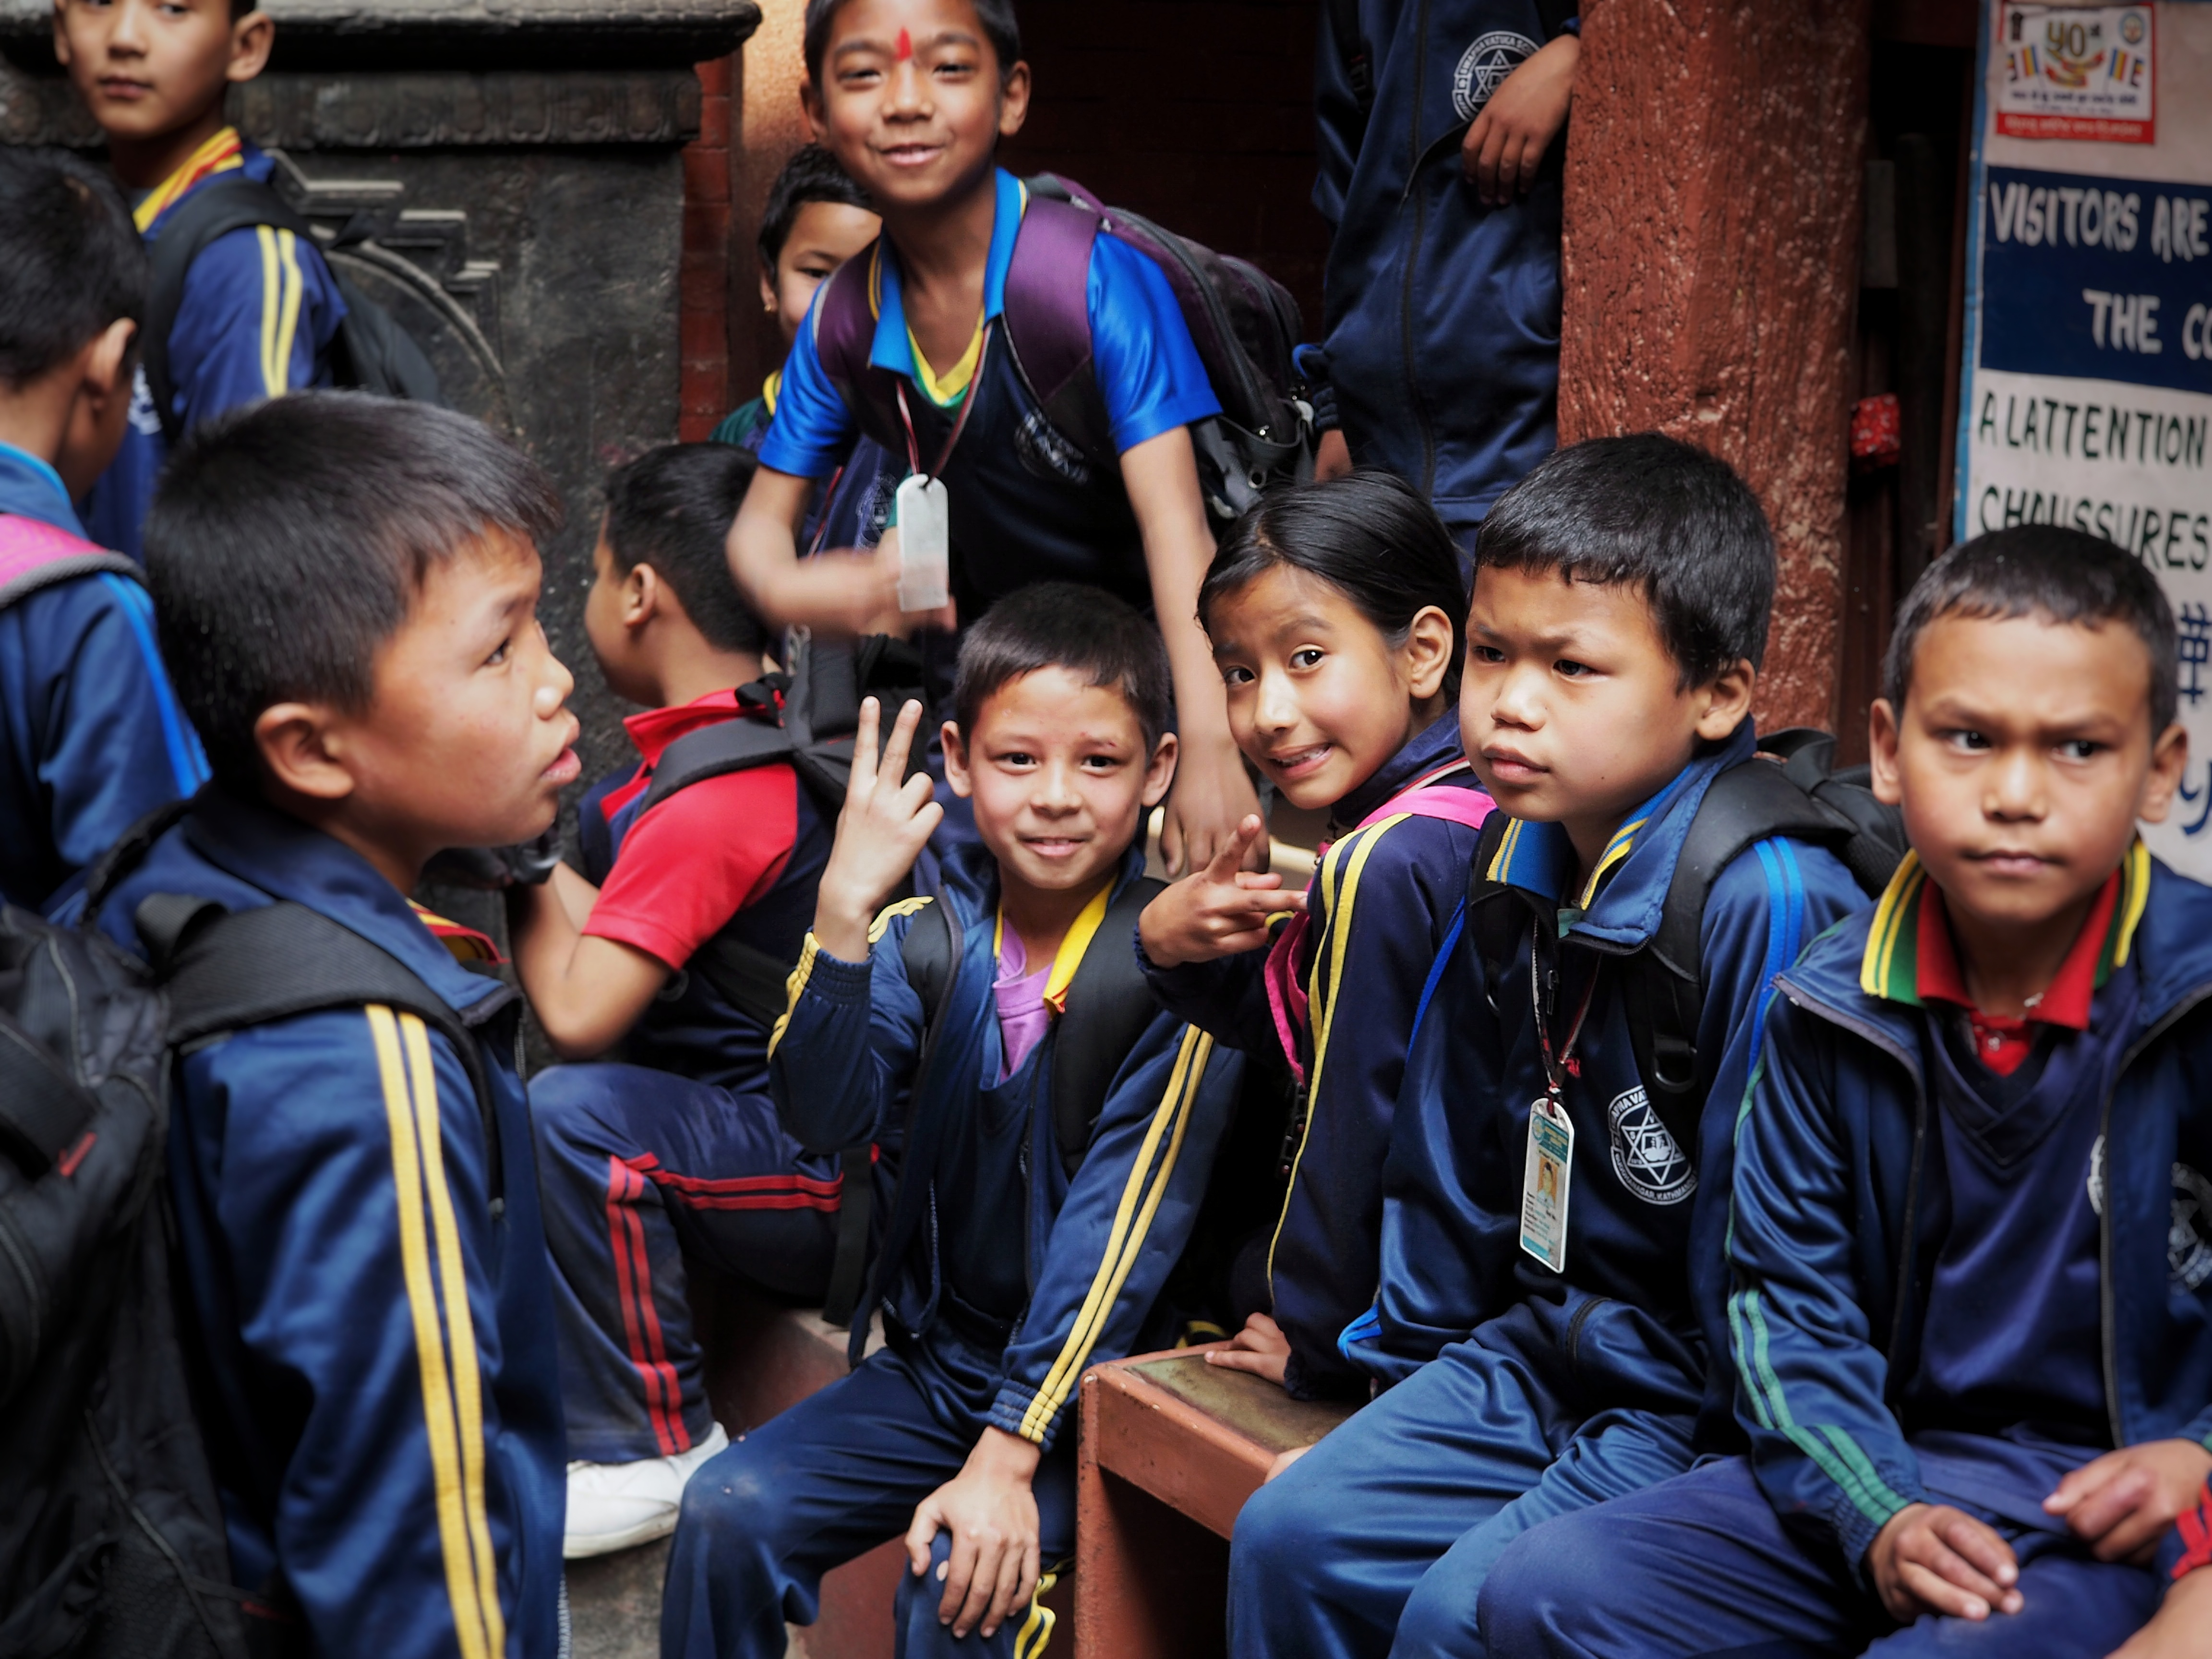 Patan, School, Class, Kids, Children